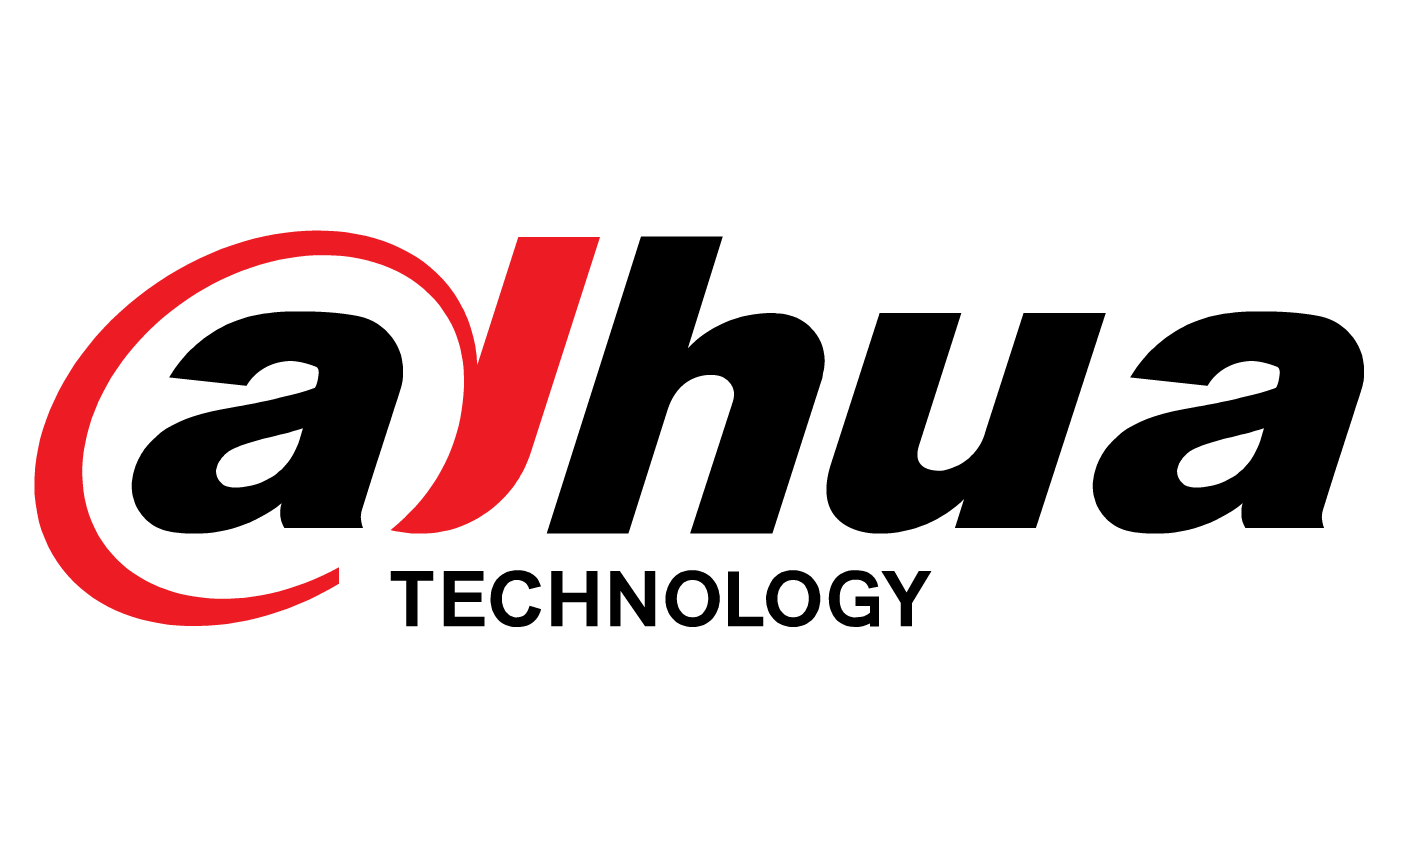 Dahua-LOGO_black_with_red_D